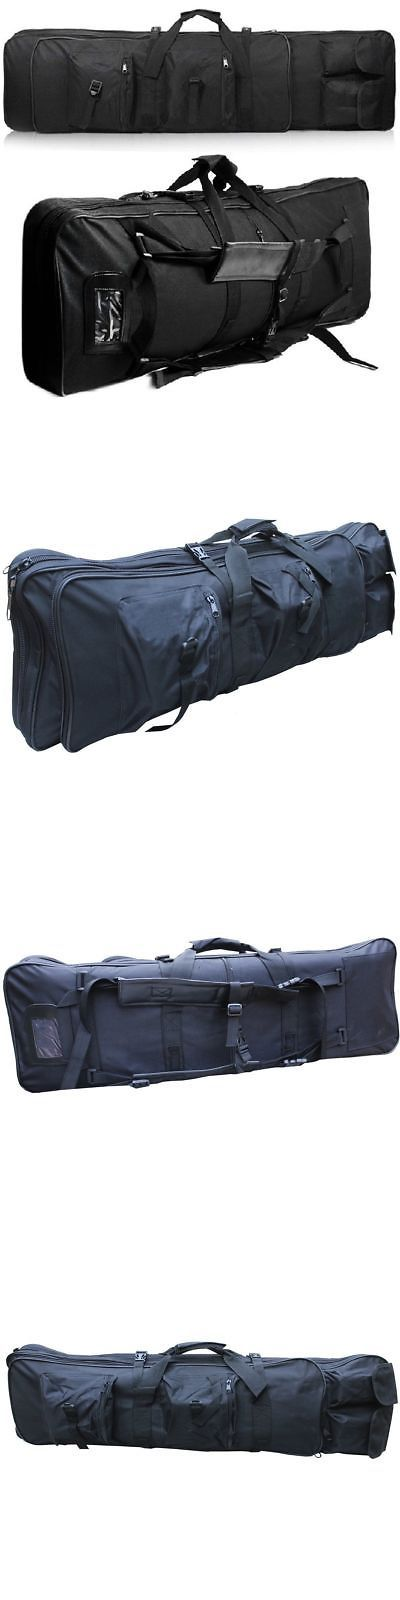 Hunting Bags and Packs 52503: 600D 47 120Cm Swat Dual Tactical Rifle Carrying Case Gun Bag Fishing Bags Black -> BUY IT NOW ONLY: $35.99 on eBay!